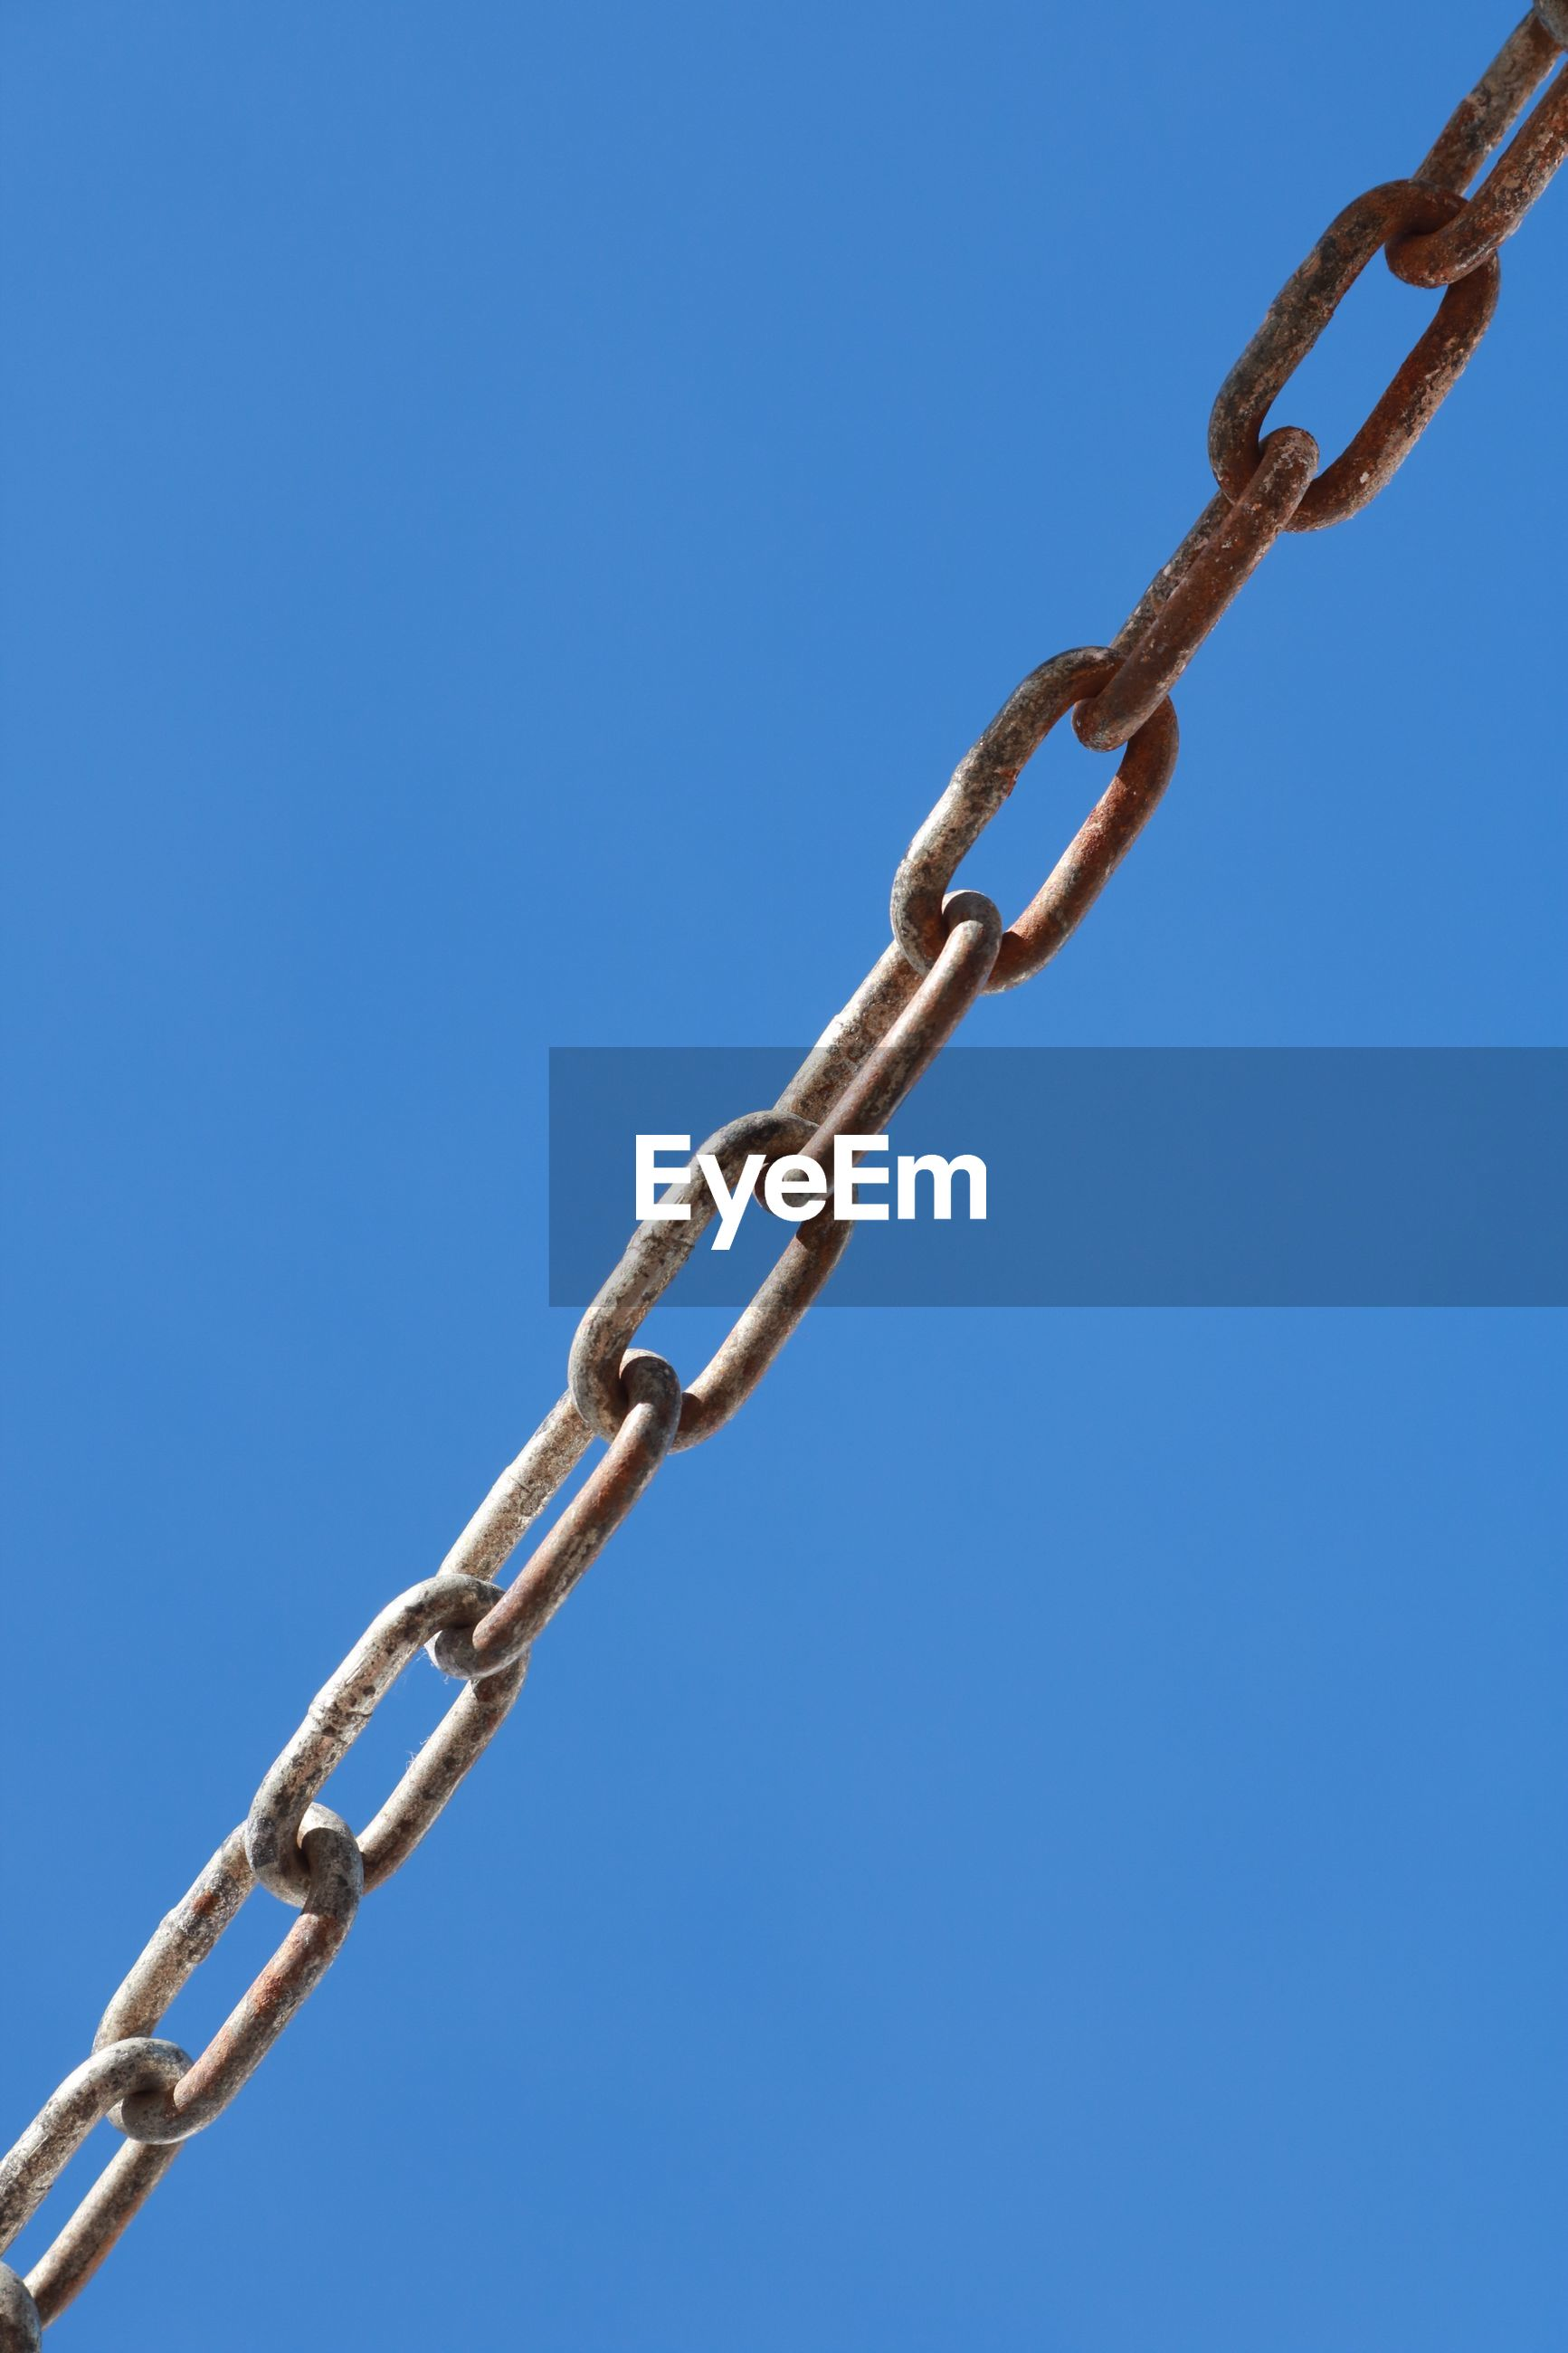 LOW ANGLE VIEW OF CHAIN AGAINST SKY